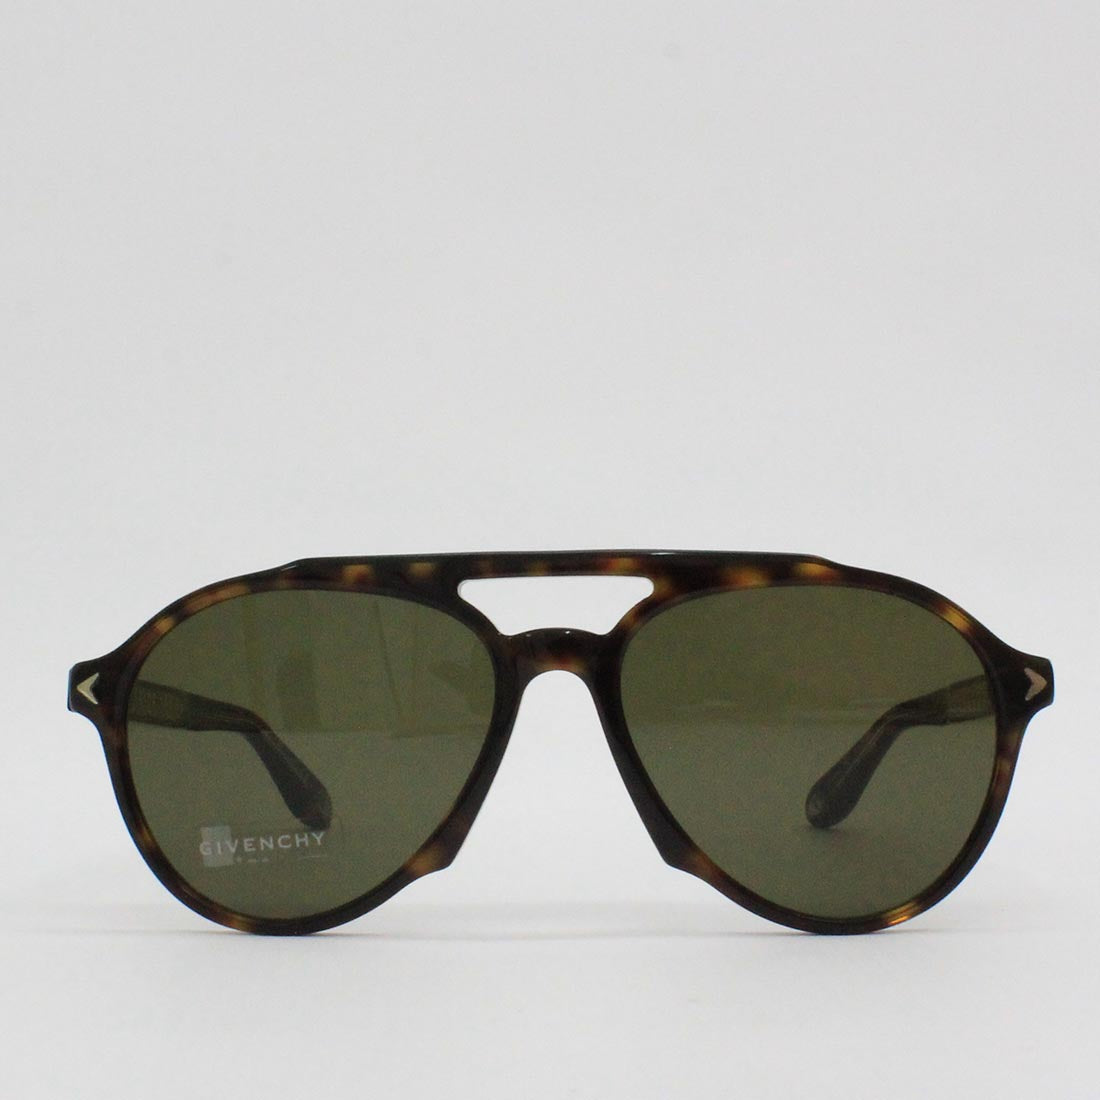 Givenchy 56HA Tortoise Shell Frame Aviator Sunglasses Dark Havana